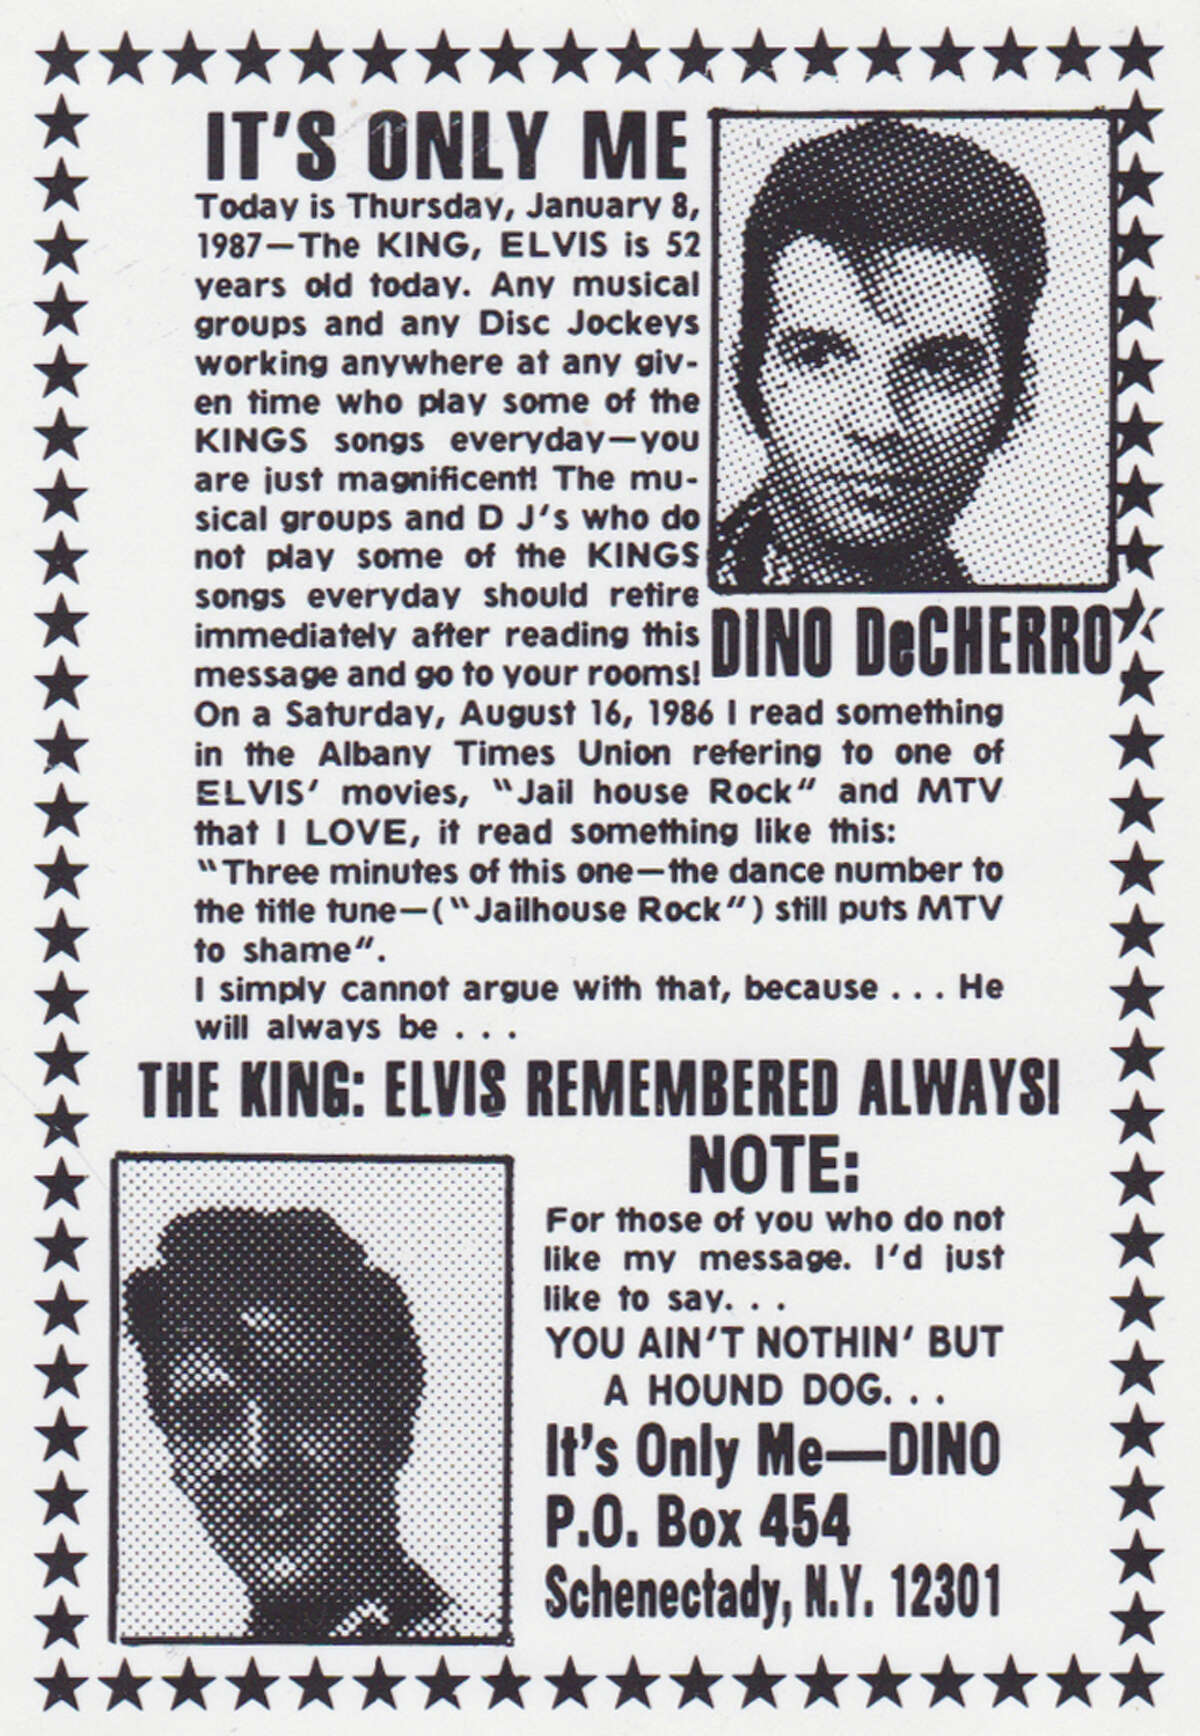 One of many ads Dino De Cherro placed in the Schenectady Gazette, many of them commemorating the birthday of Elvis Presley. (Courtesy Joe Glickman.)